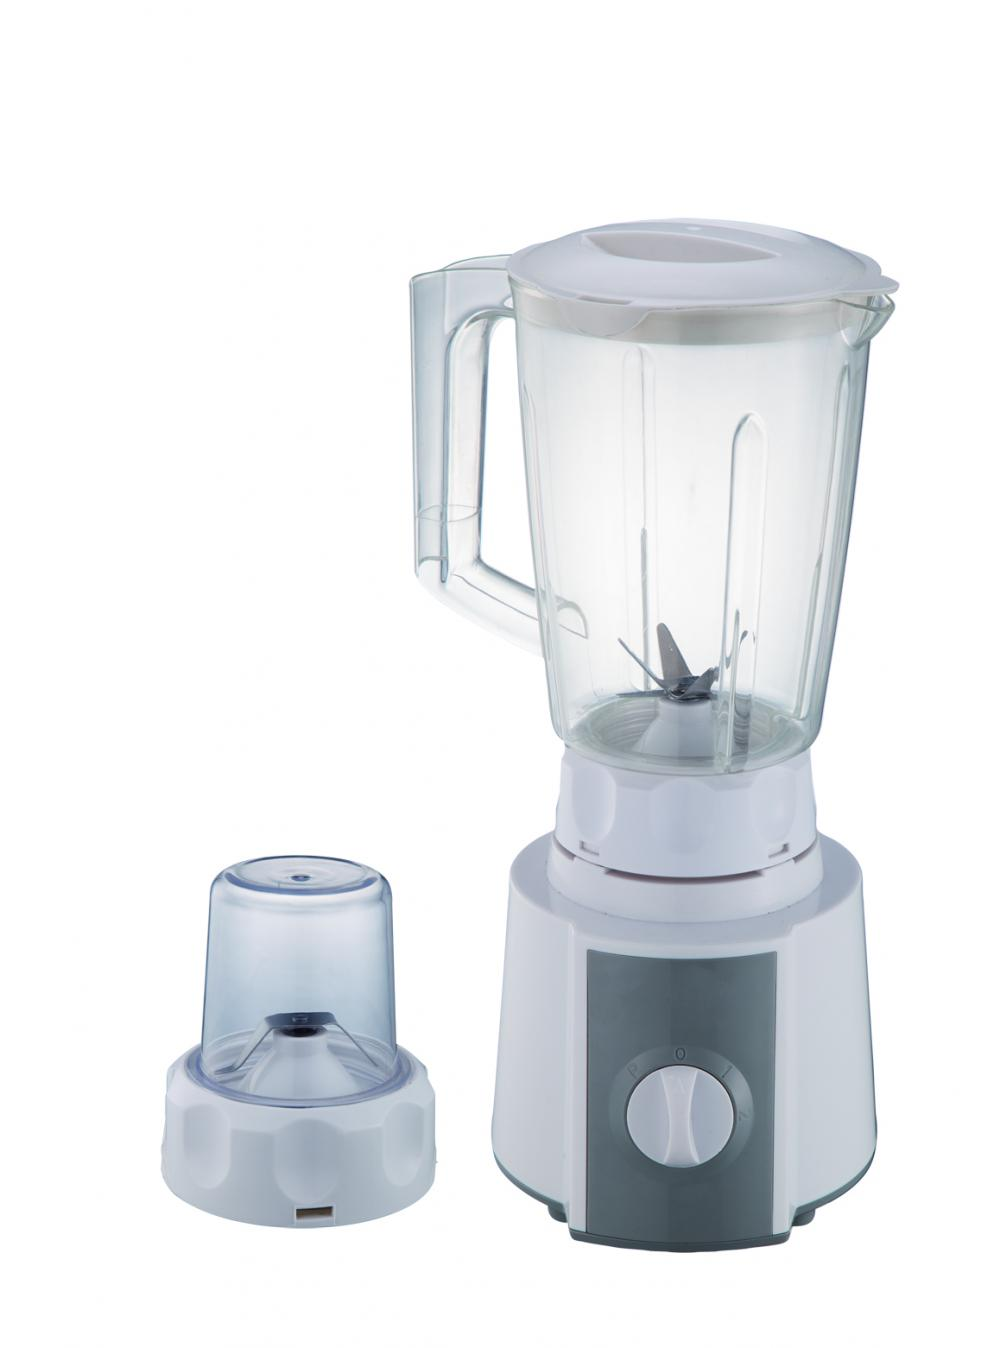 Low Price Hot Sell 2 Speeds 1 5l Plastic Jar Electric Blender